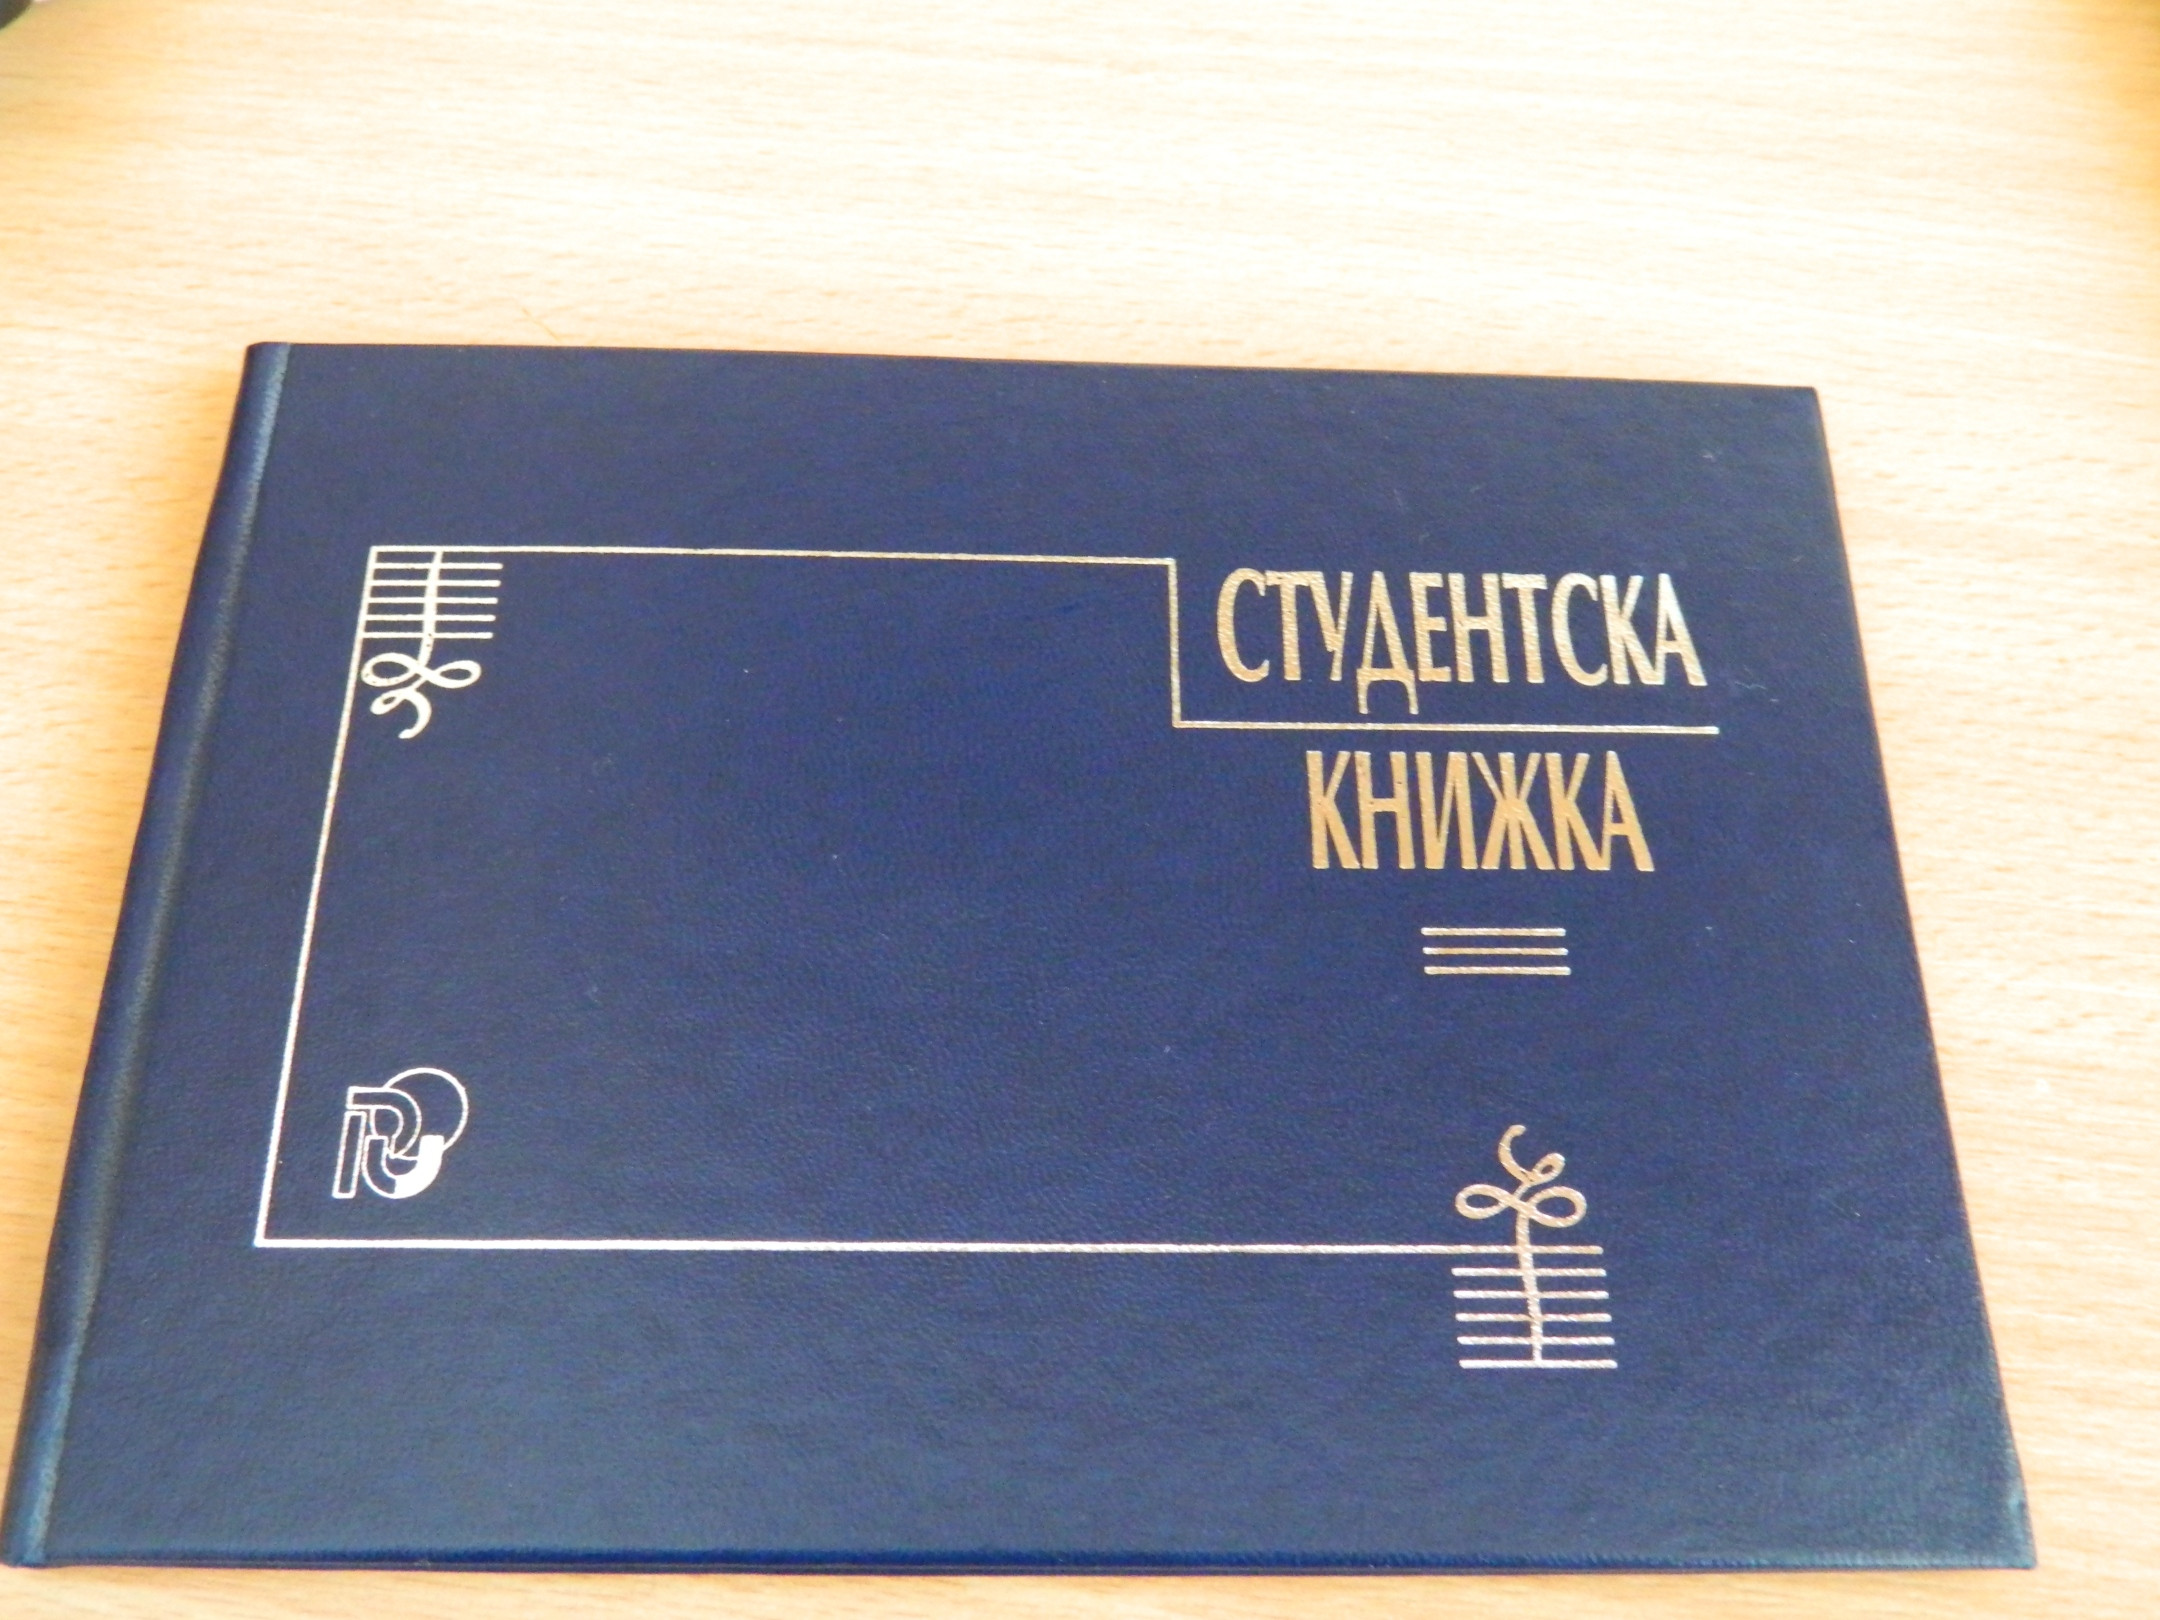 Bulgarian Student Book, Book, Bulgaria, Bulgarian, Student, HQ Photo